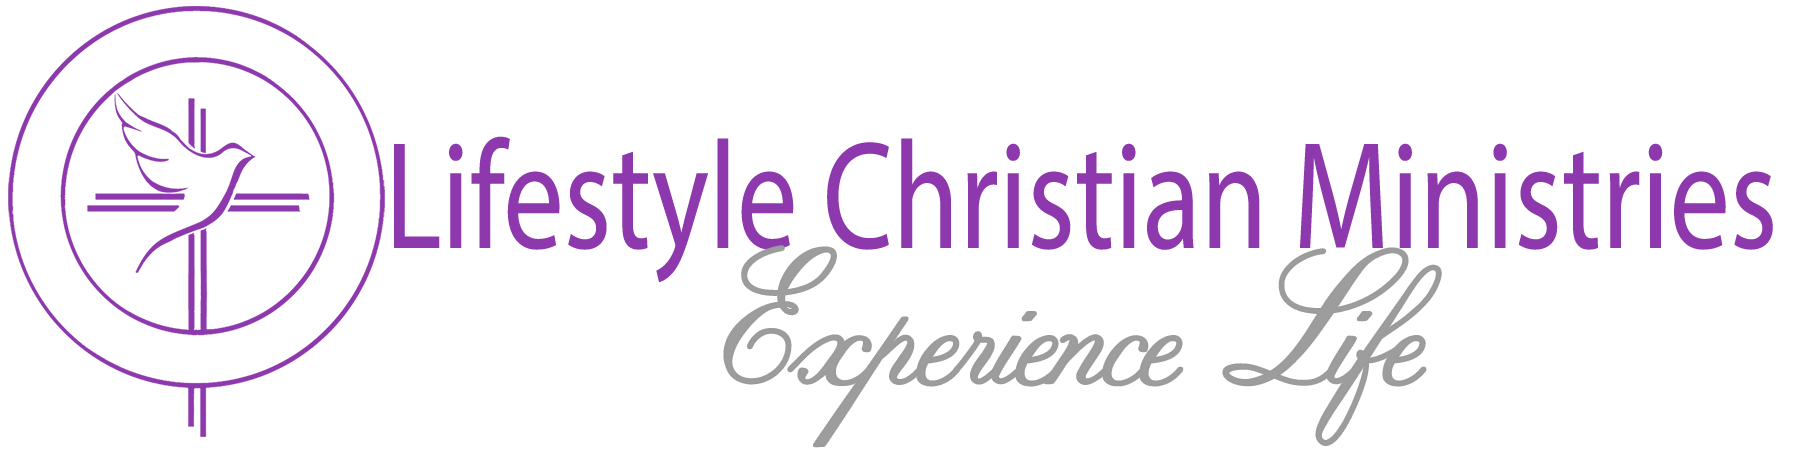 Lifestyle Christian Ministries